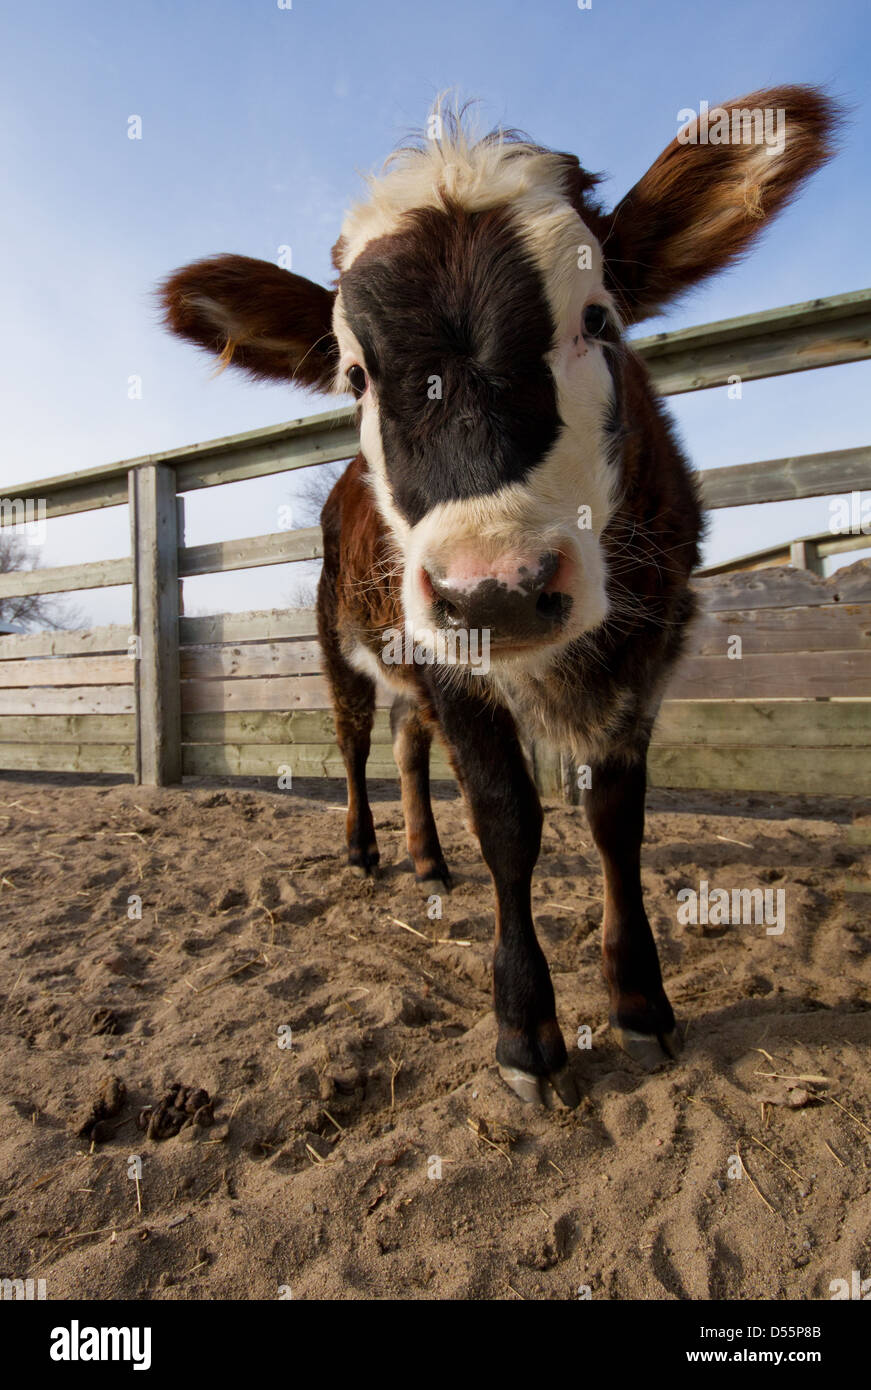 Funny cow portrait with wide angle. - Stock Image